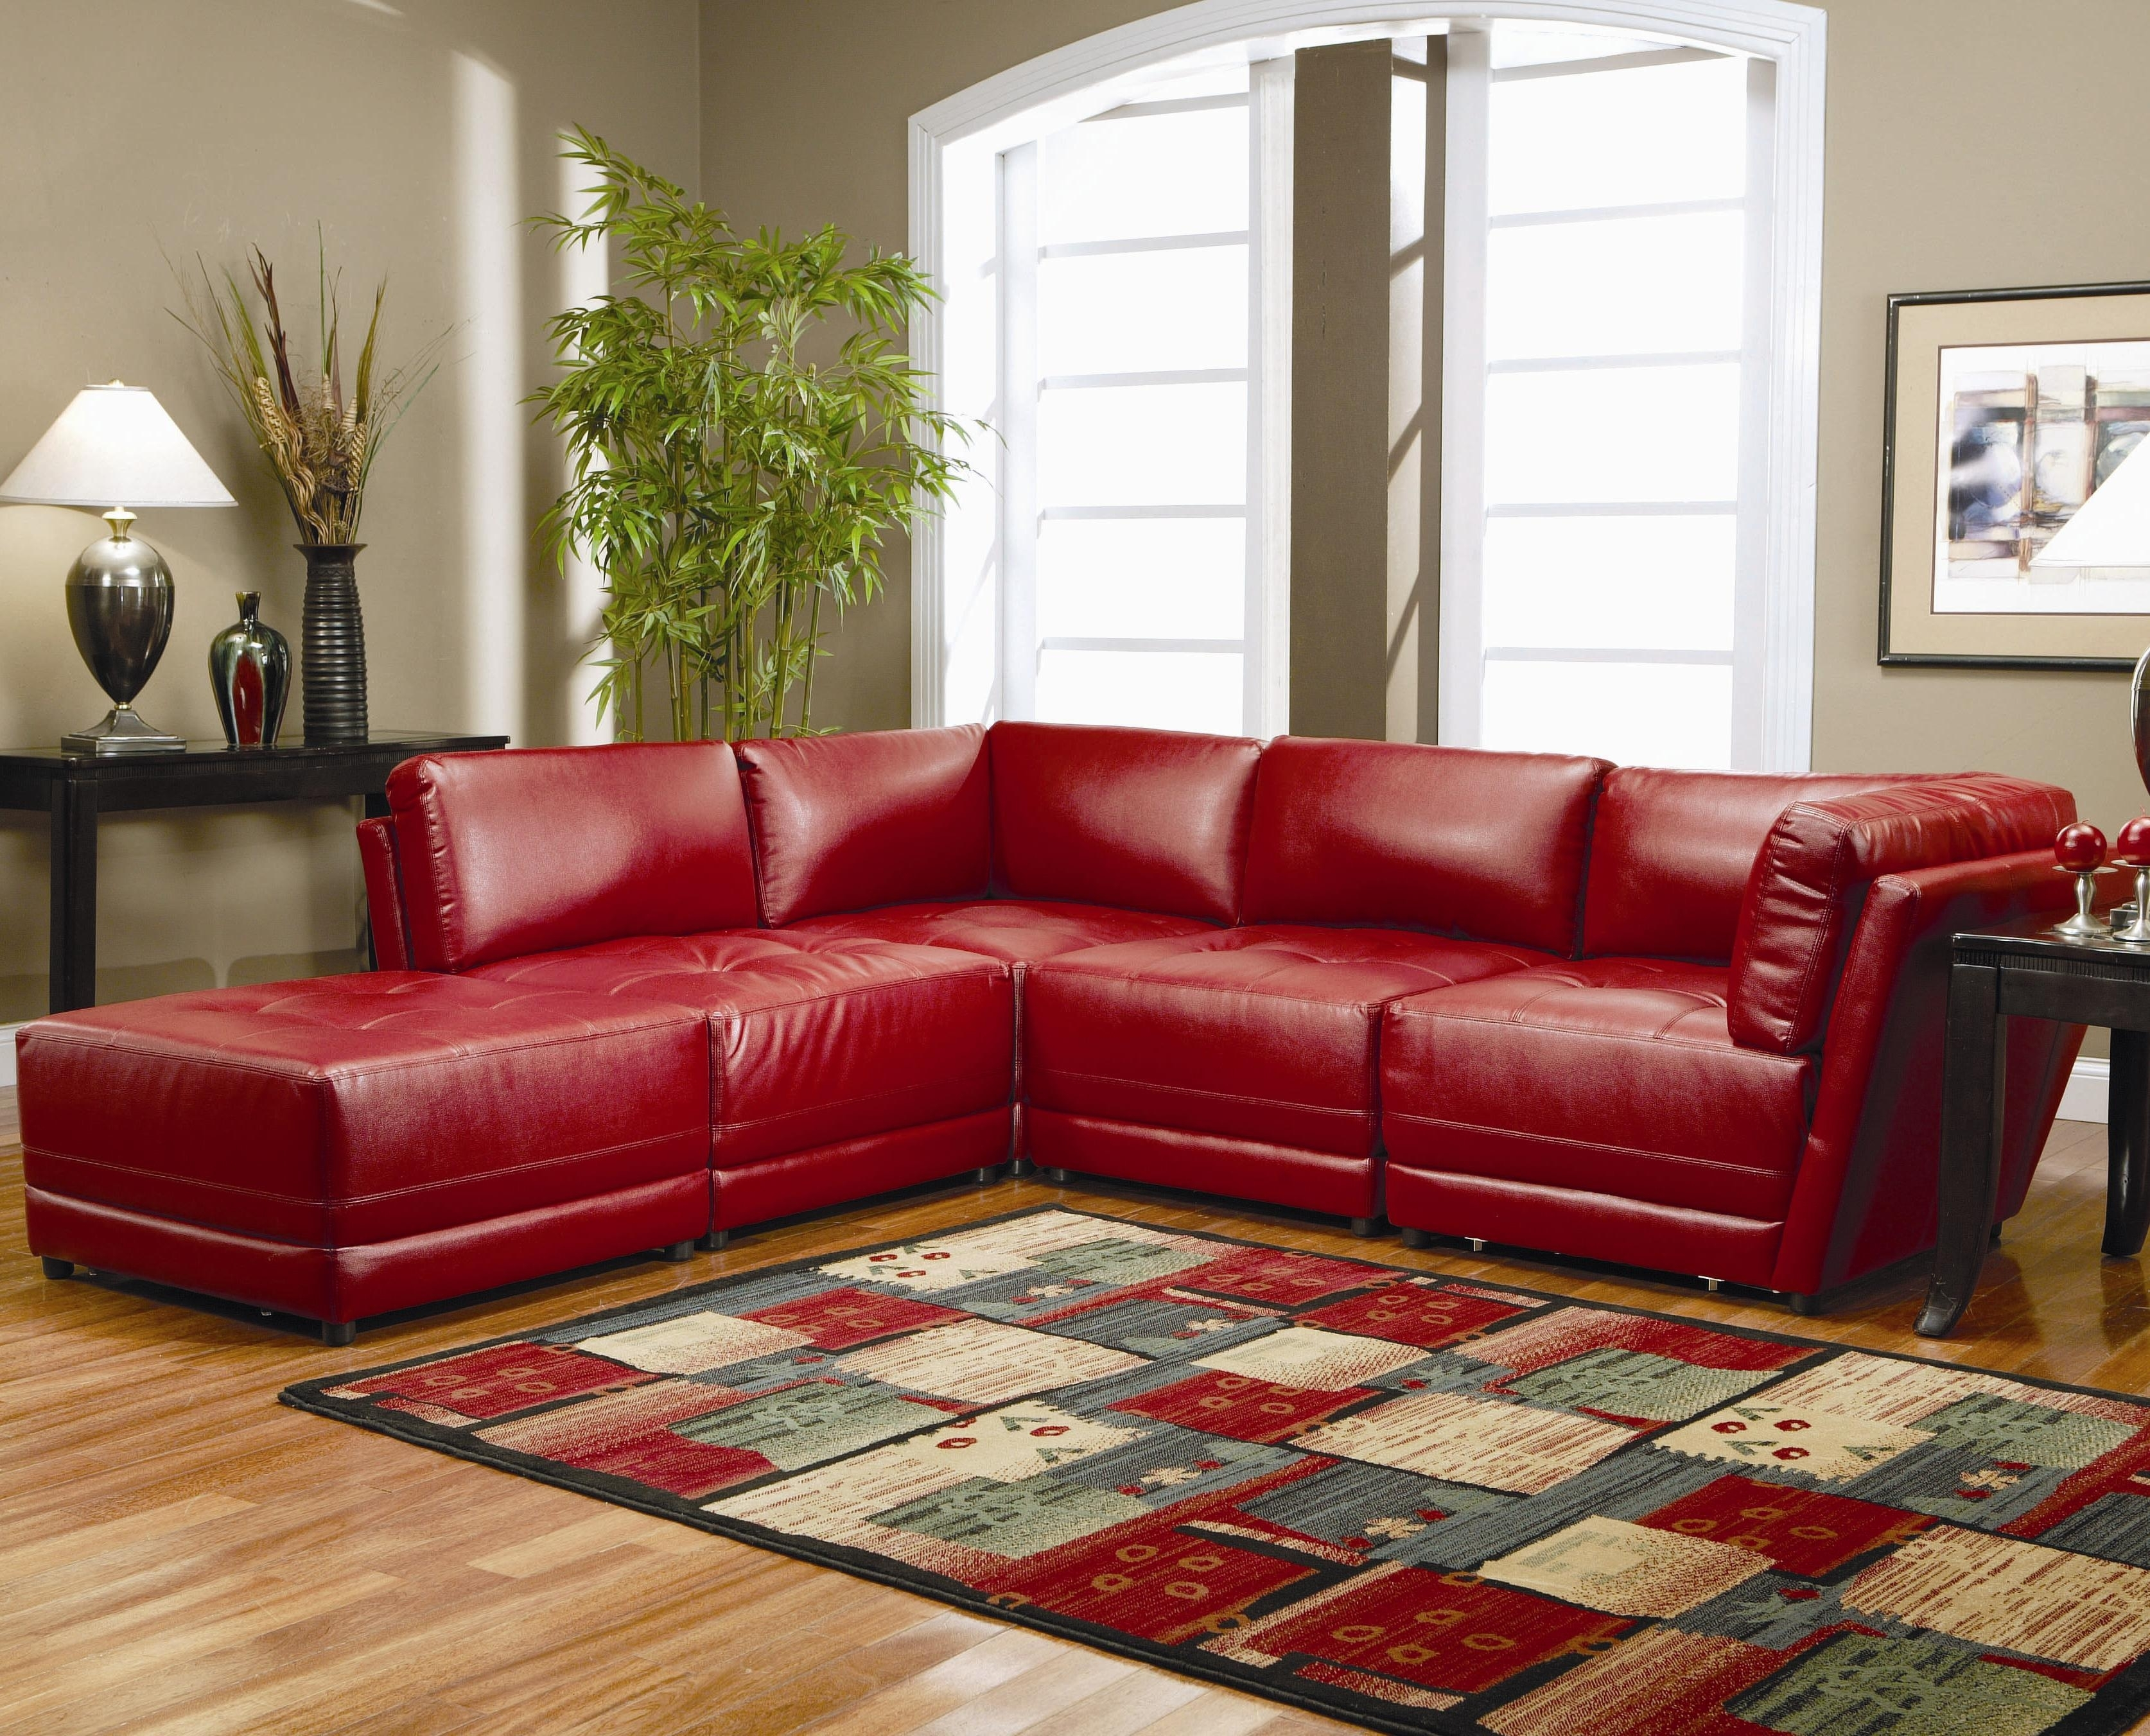 Warm Red Leather Sectional L Shaped Sofa Design Ideas For Living throughout Red Leather Couches for Living Room (Image 15 of 15)